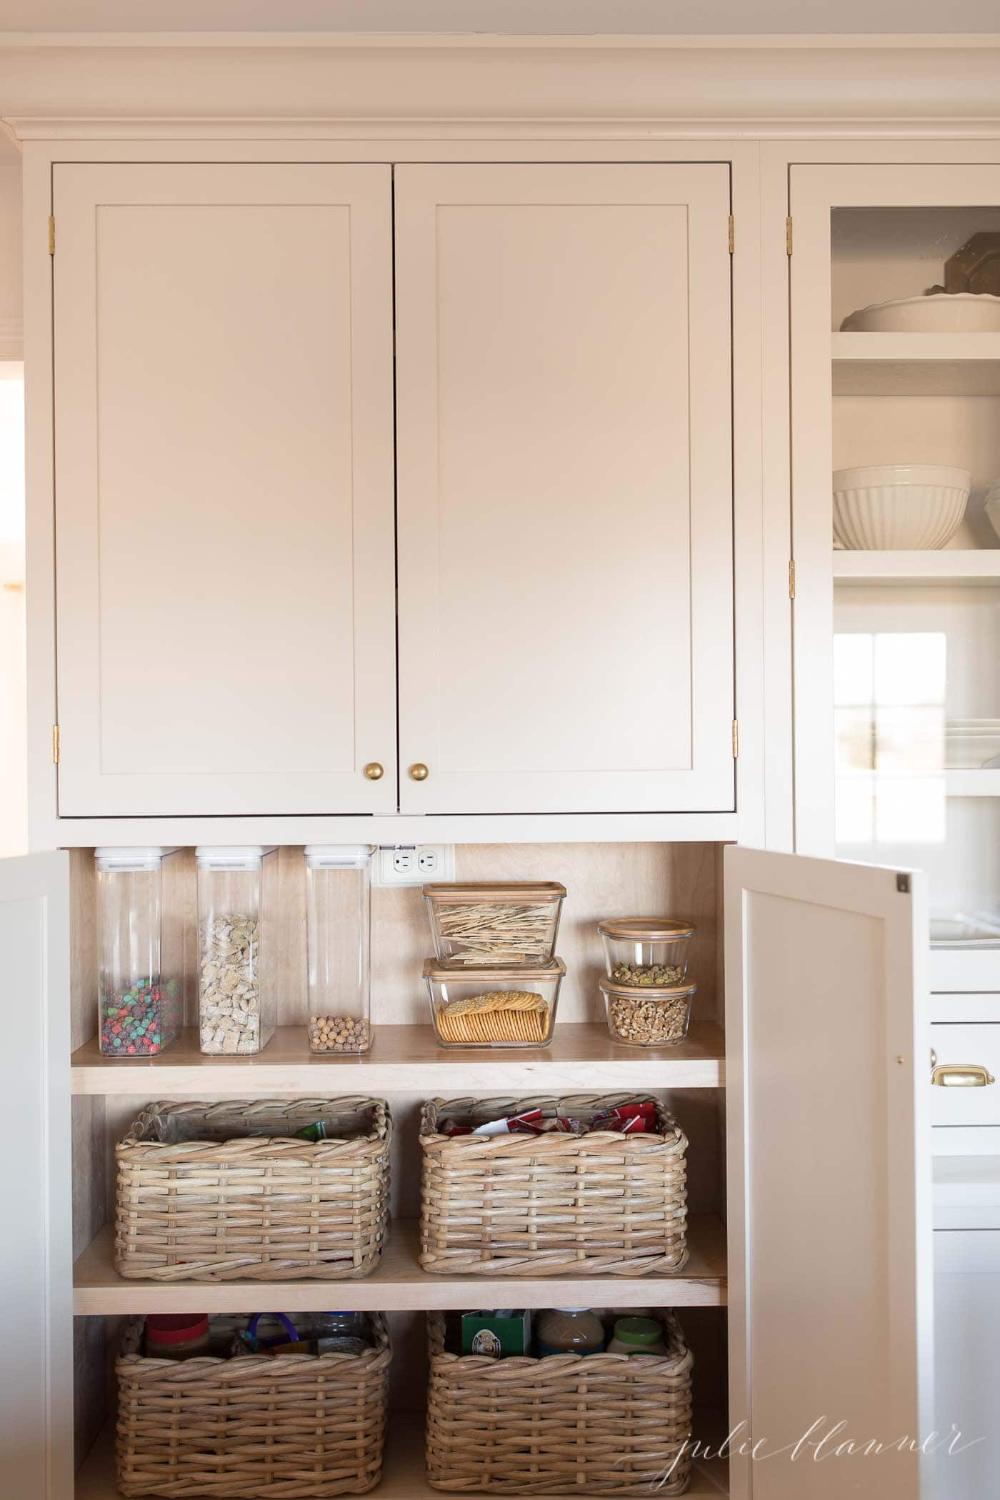 Cabinets Inset Shaker Pantry 12 Deep In 2020 Kitchen Pantry Kitchen Cabinet Organization Building Kitchen Cabinets